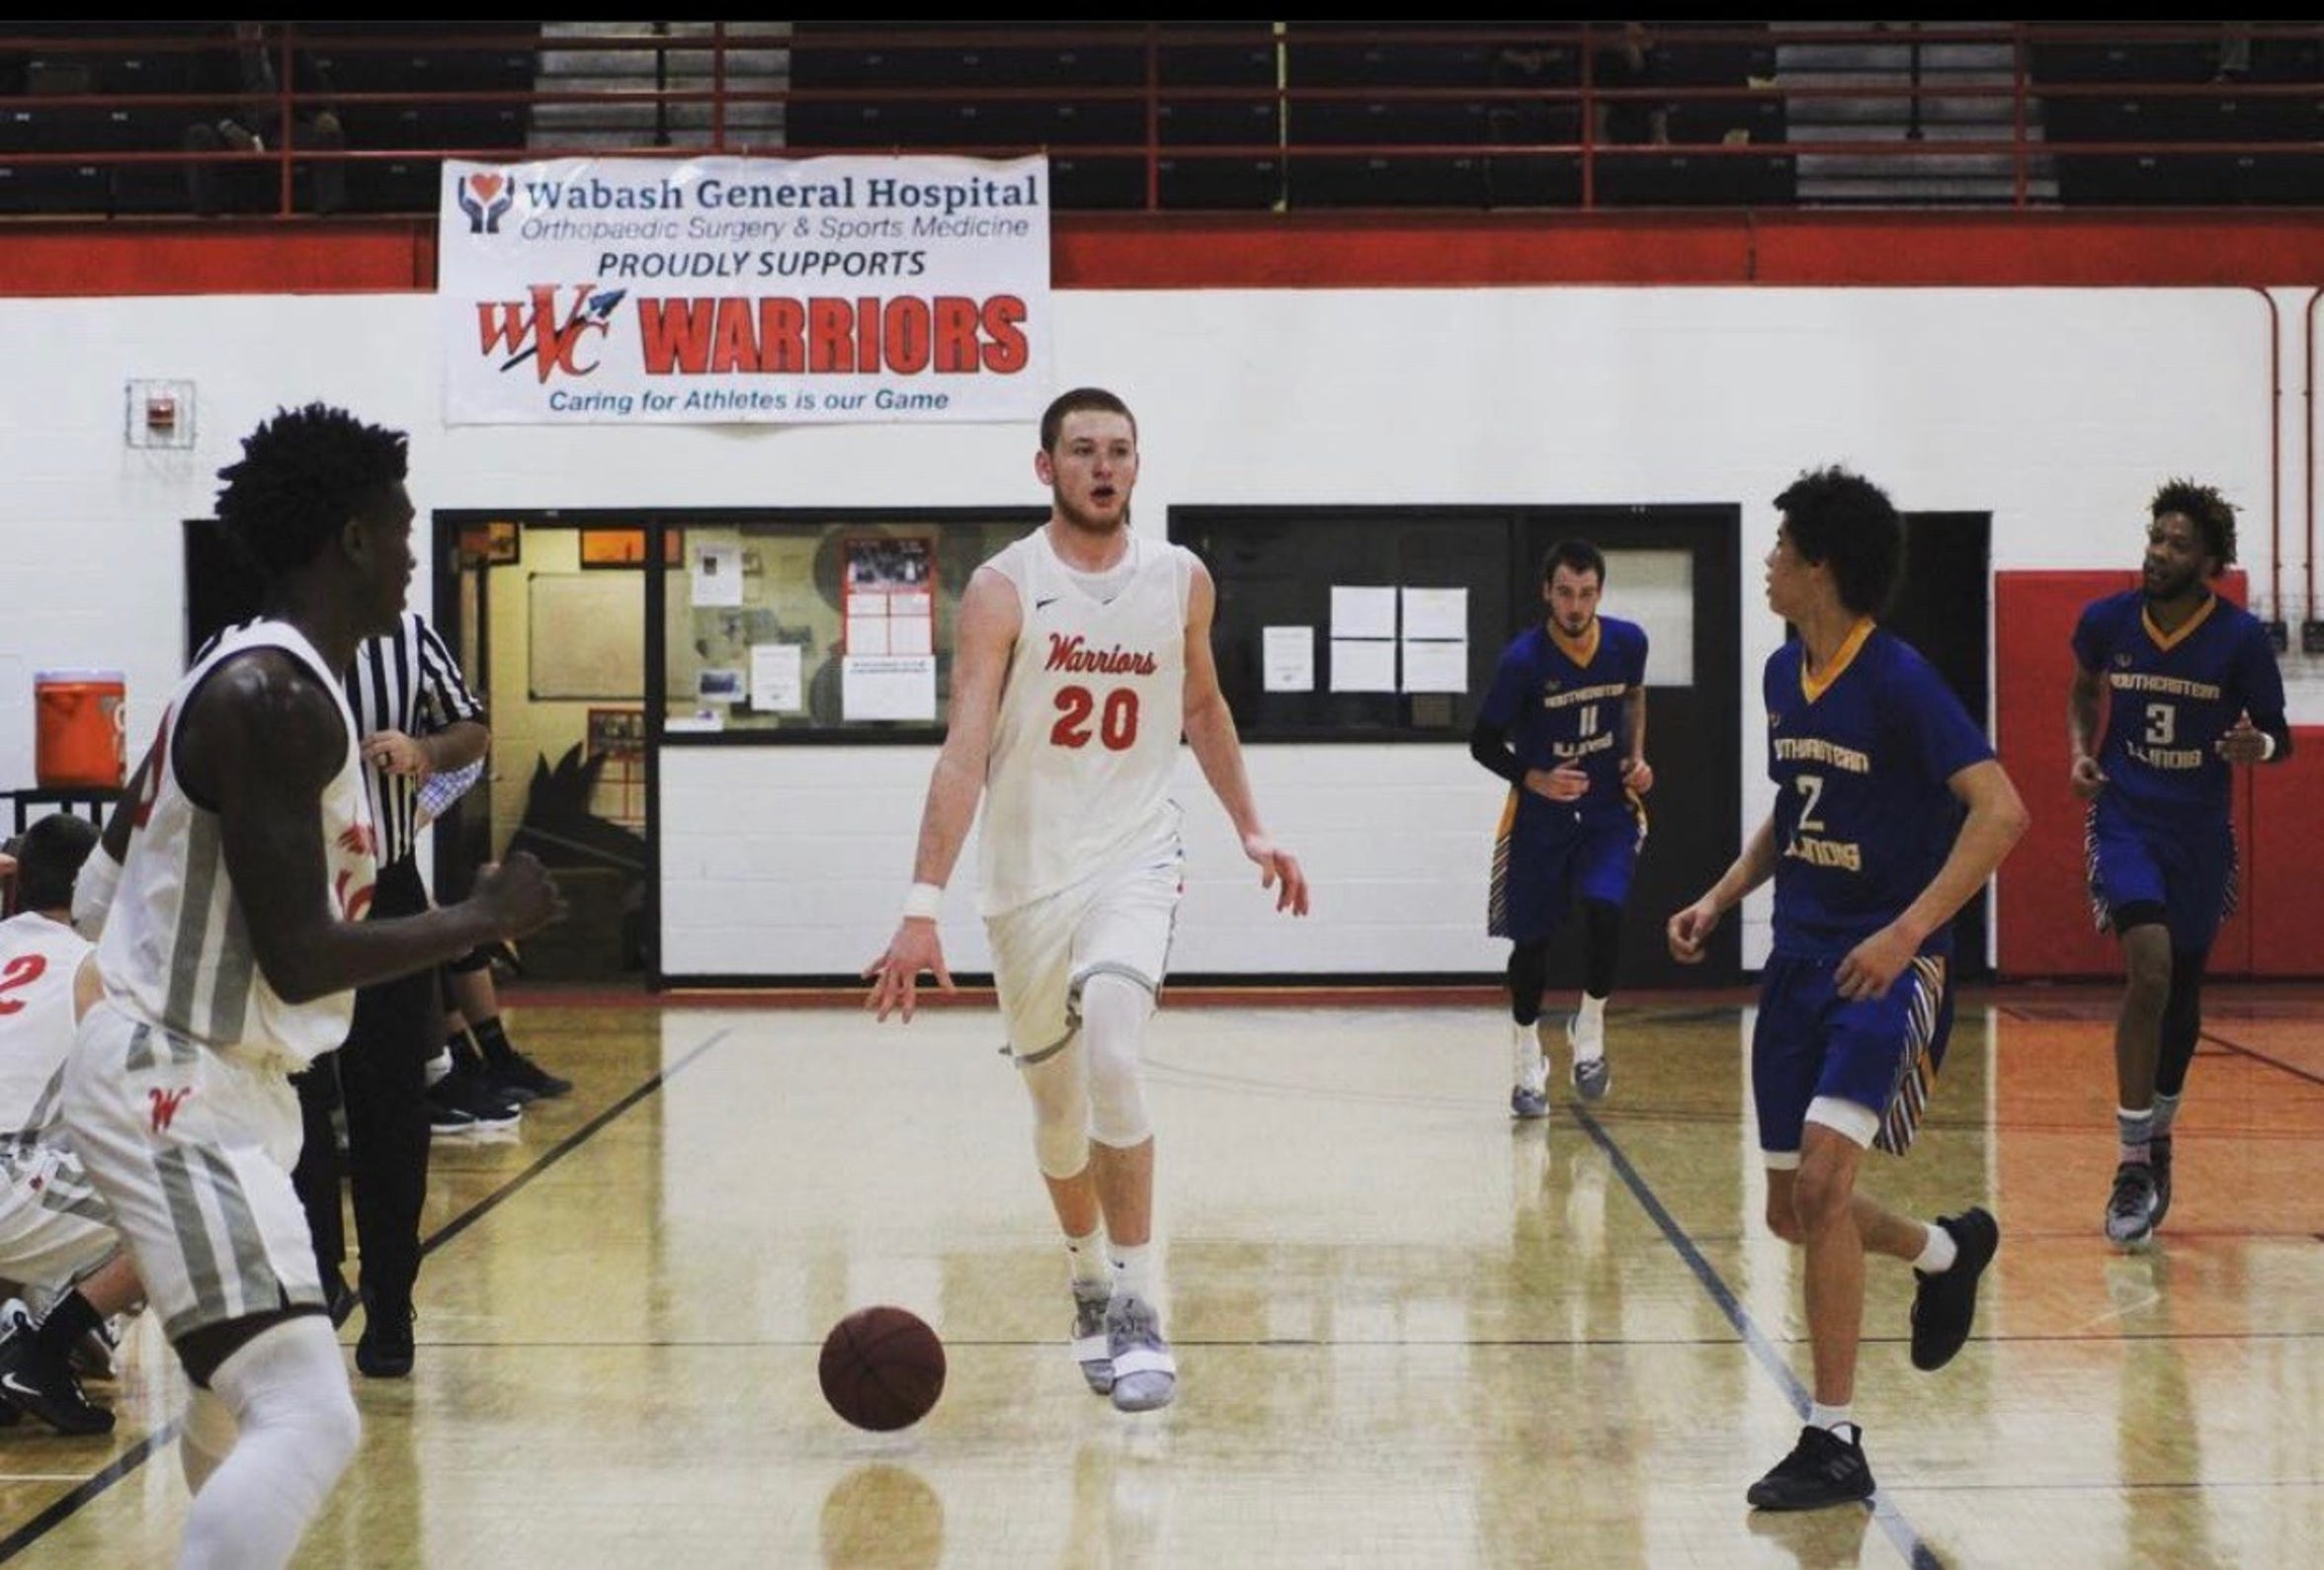 Justin Carpenter spent a season playing basketball at Wabash Valley College after transferring from SEMO.